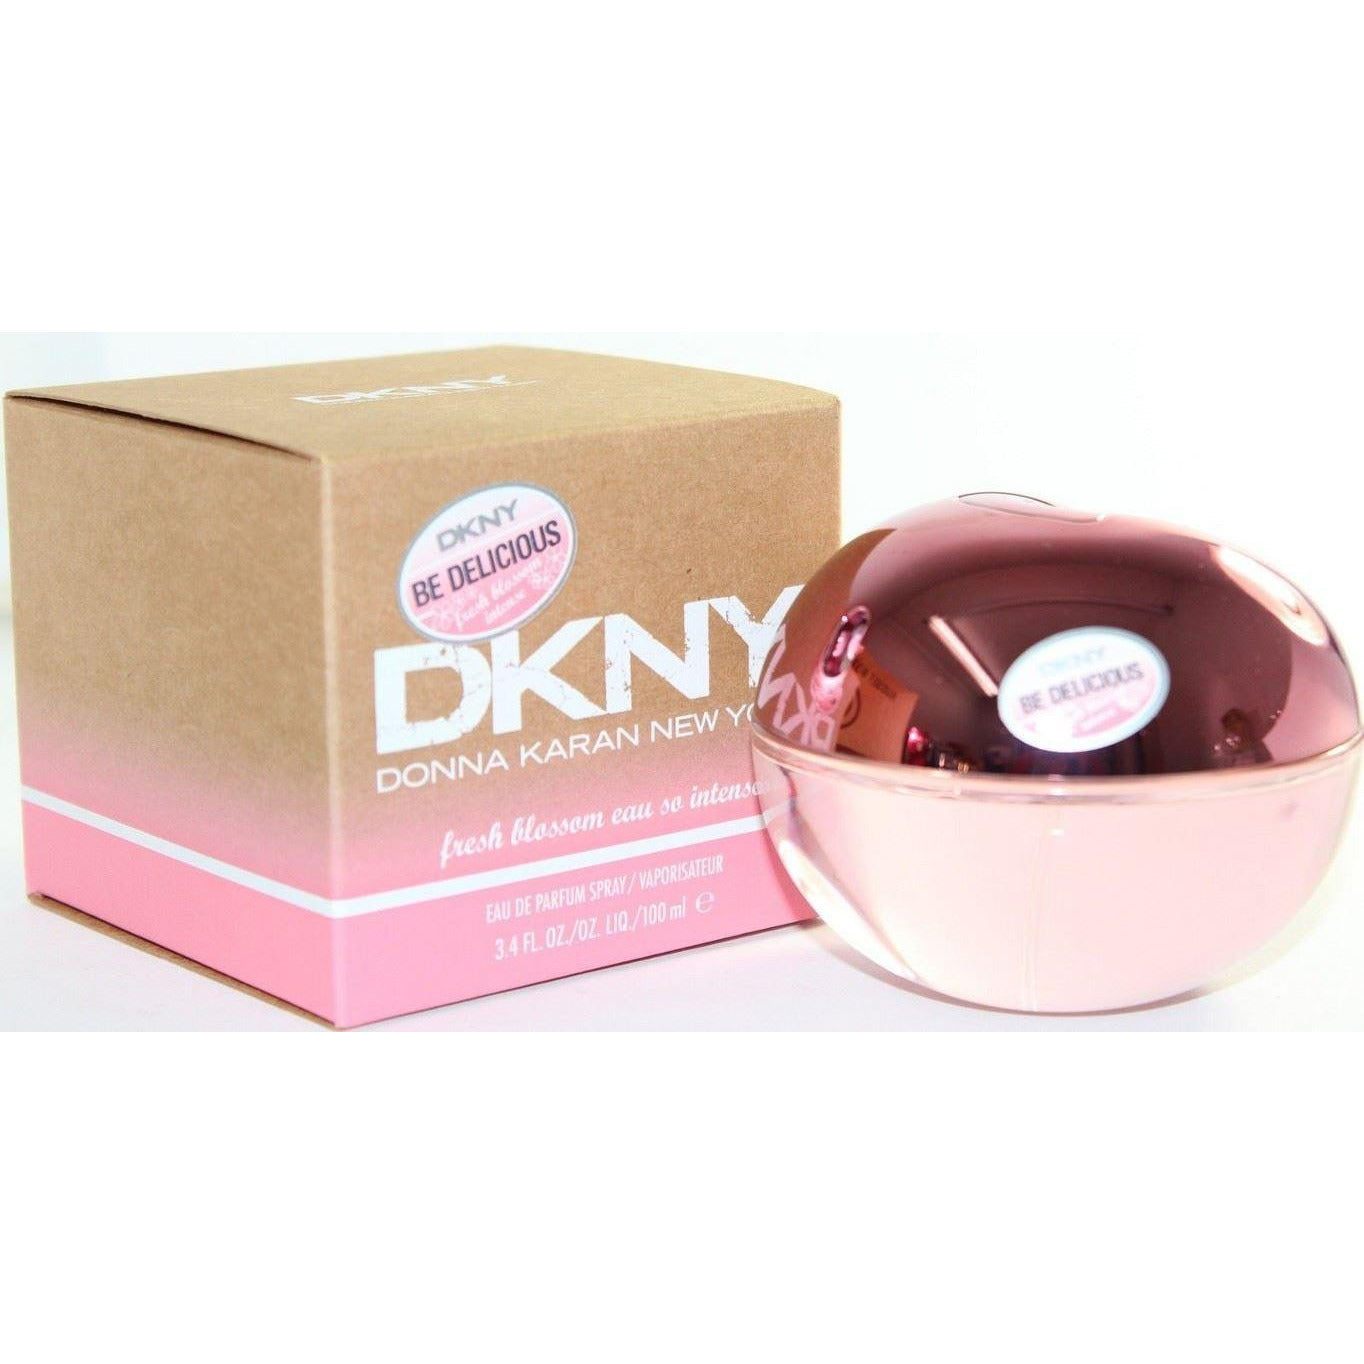 dkny-be-delicious-fresh-blossom-eau-so-intense-edp-perfume-3-3-3-4-new-in-box